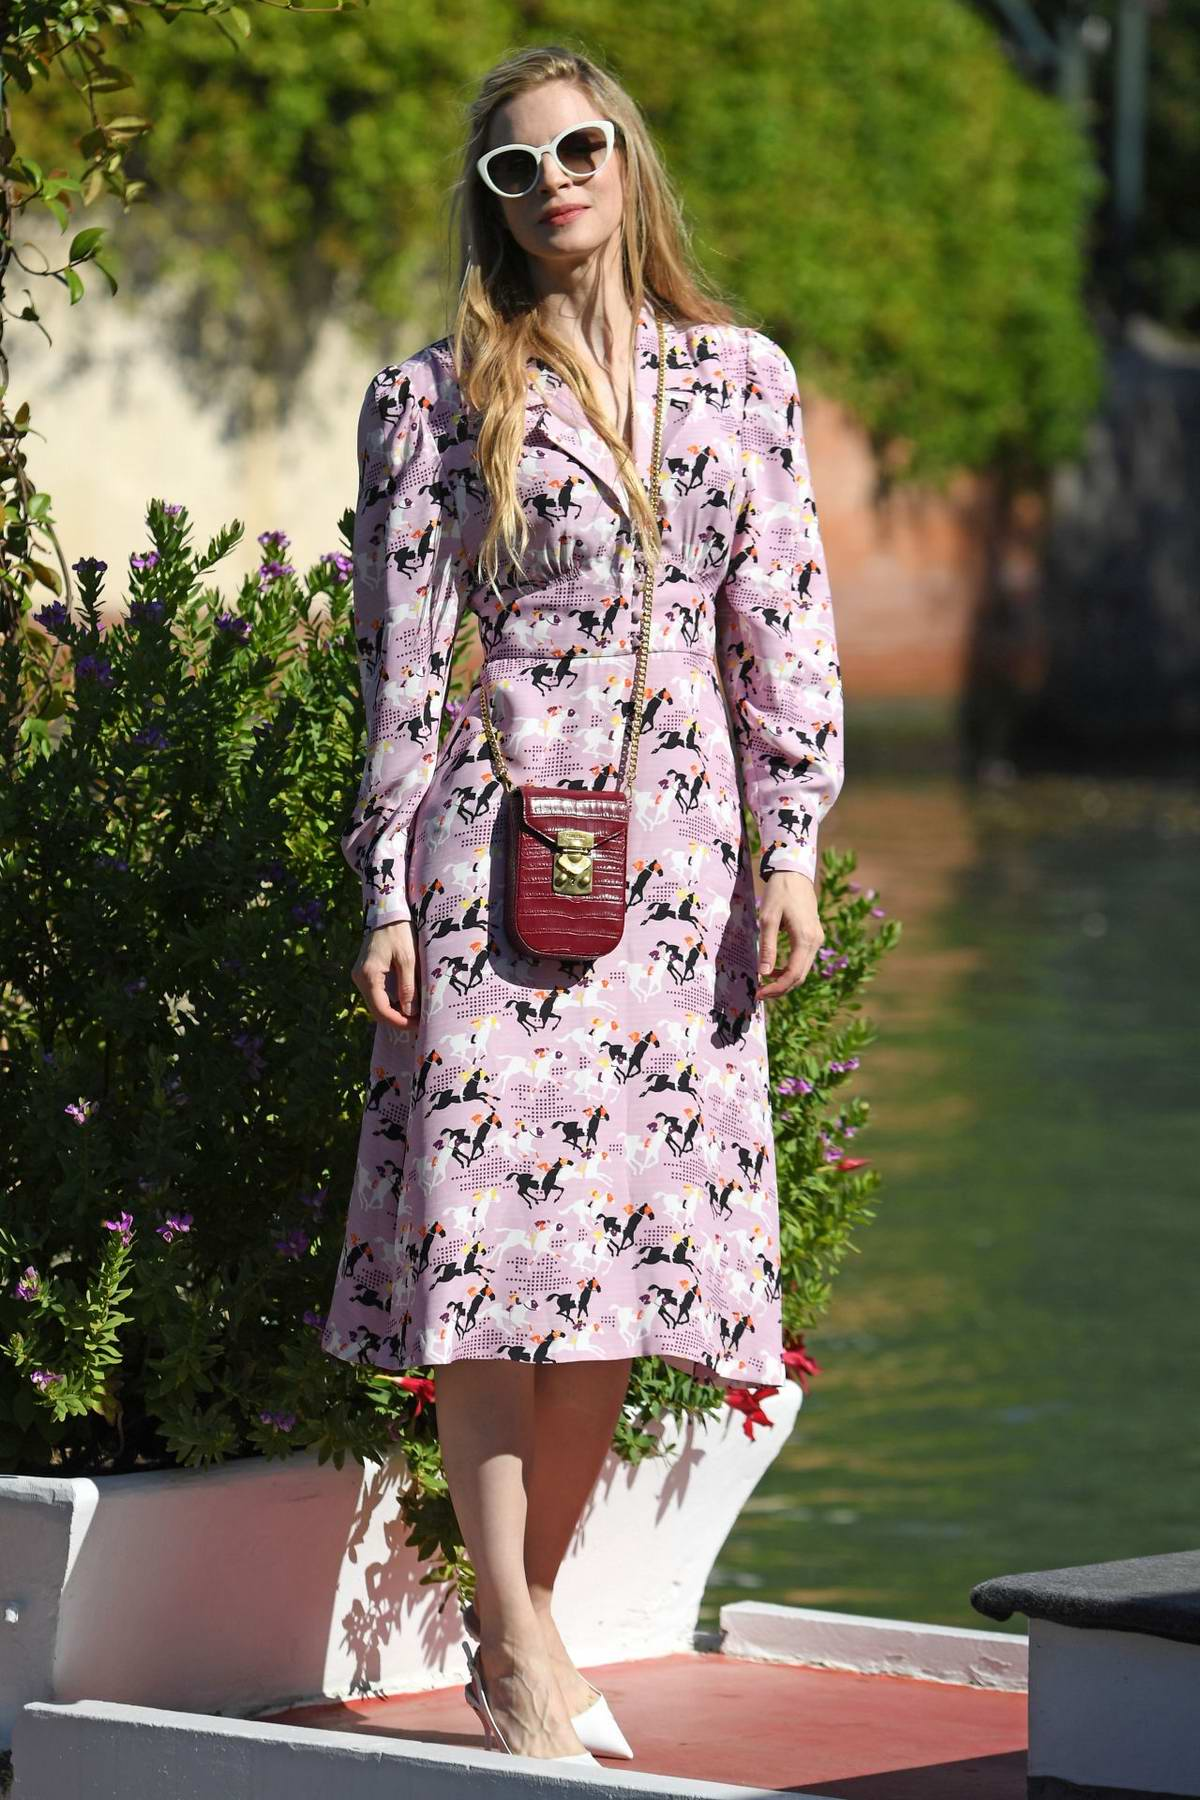 Brit Marling steps out donning a floral print dress during the 76th Venice Film Festival in Venice, Italy